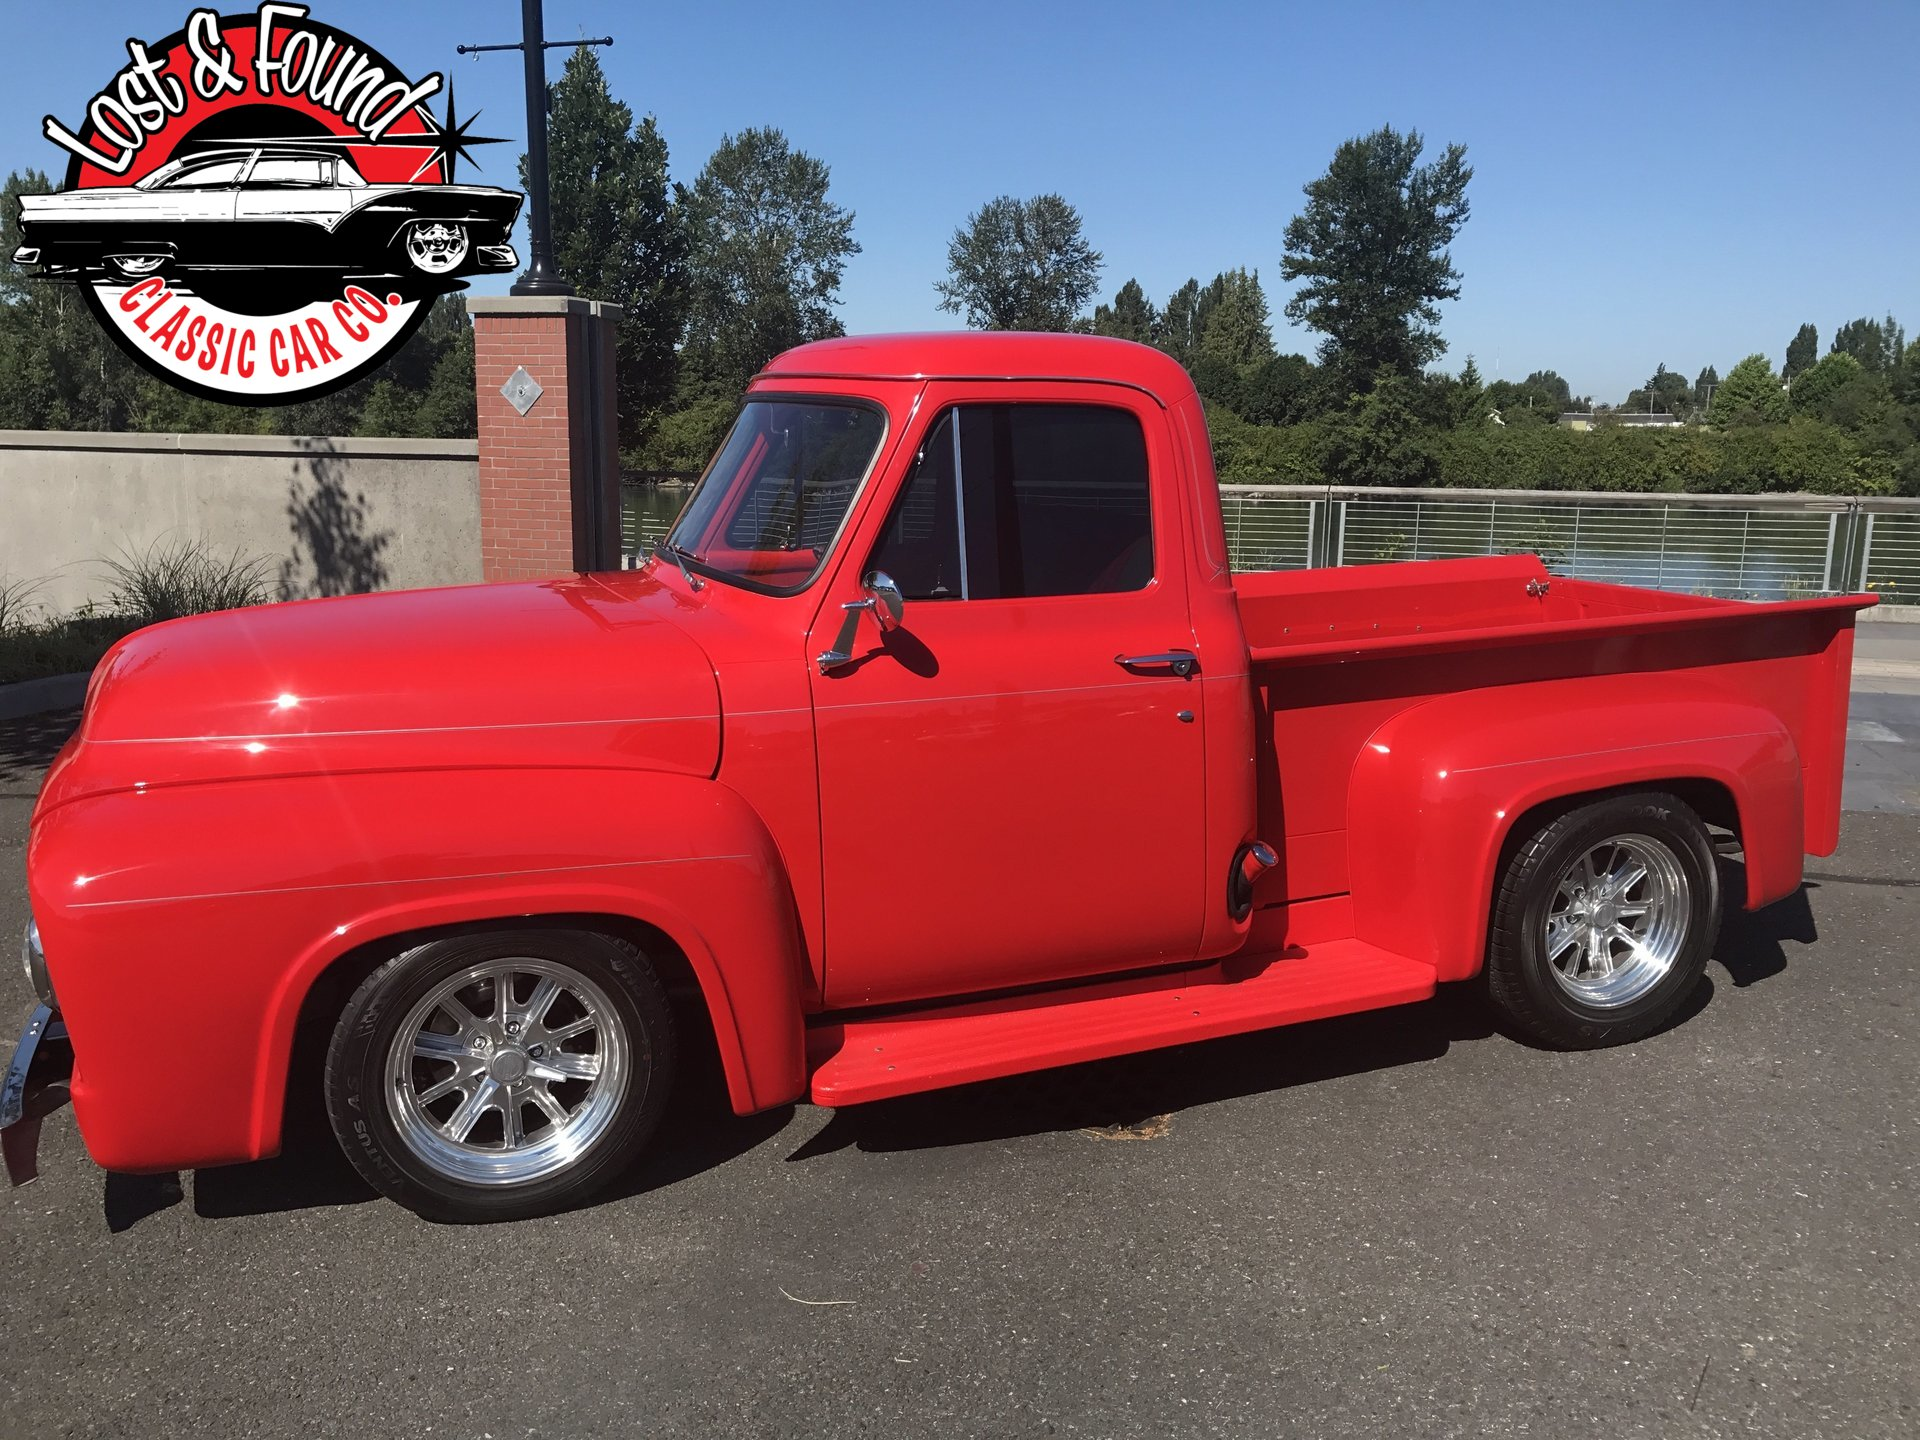 1954 Ford F100 Pickup Truck Lost Found Classic Car Co Pick